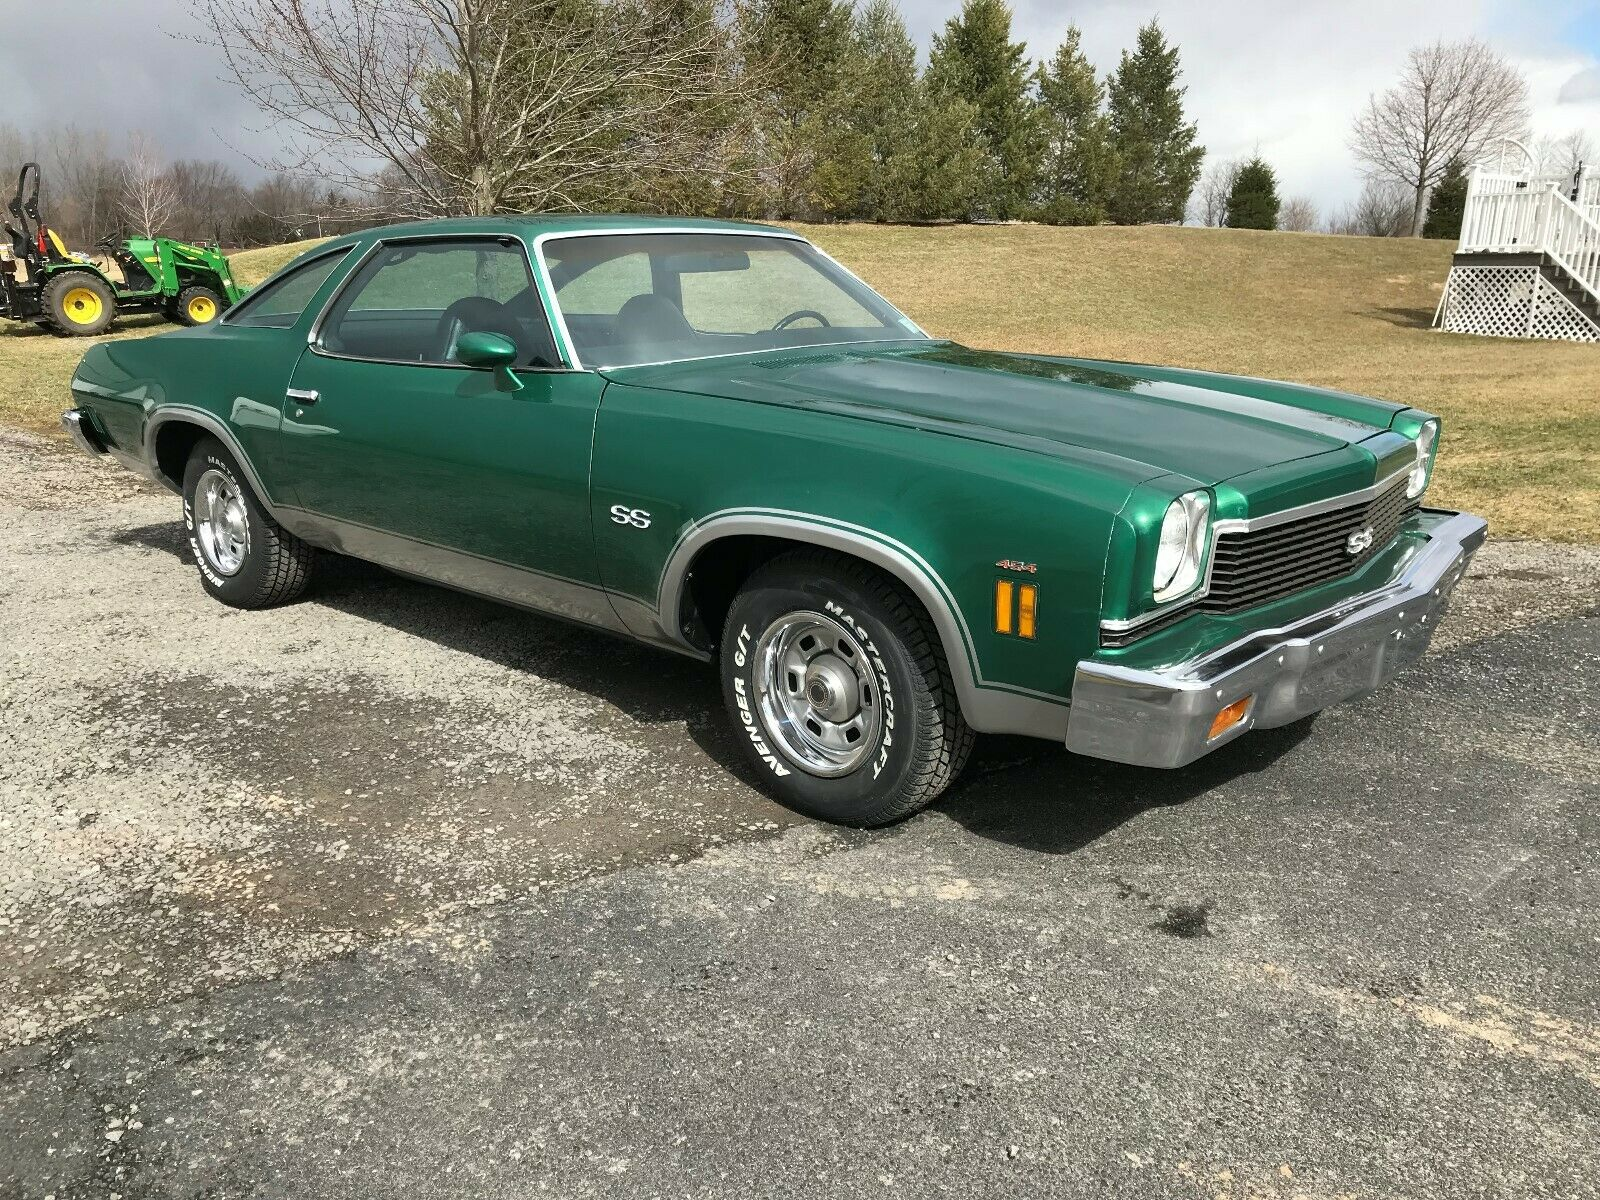 Springtime Green: It's Not Everyday A 1973 Chevrolet Chevelle SS454 Pops Up!